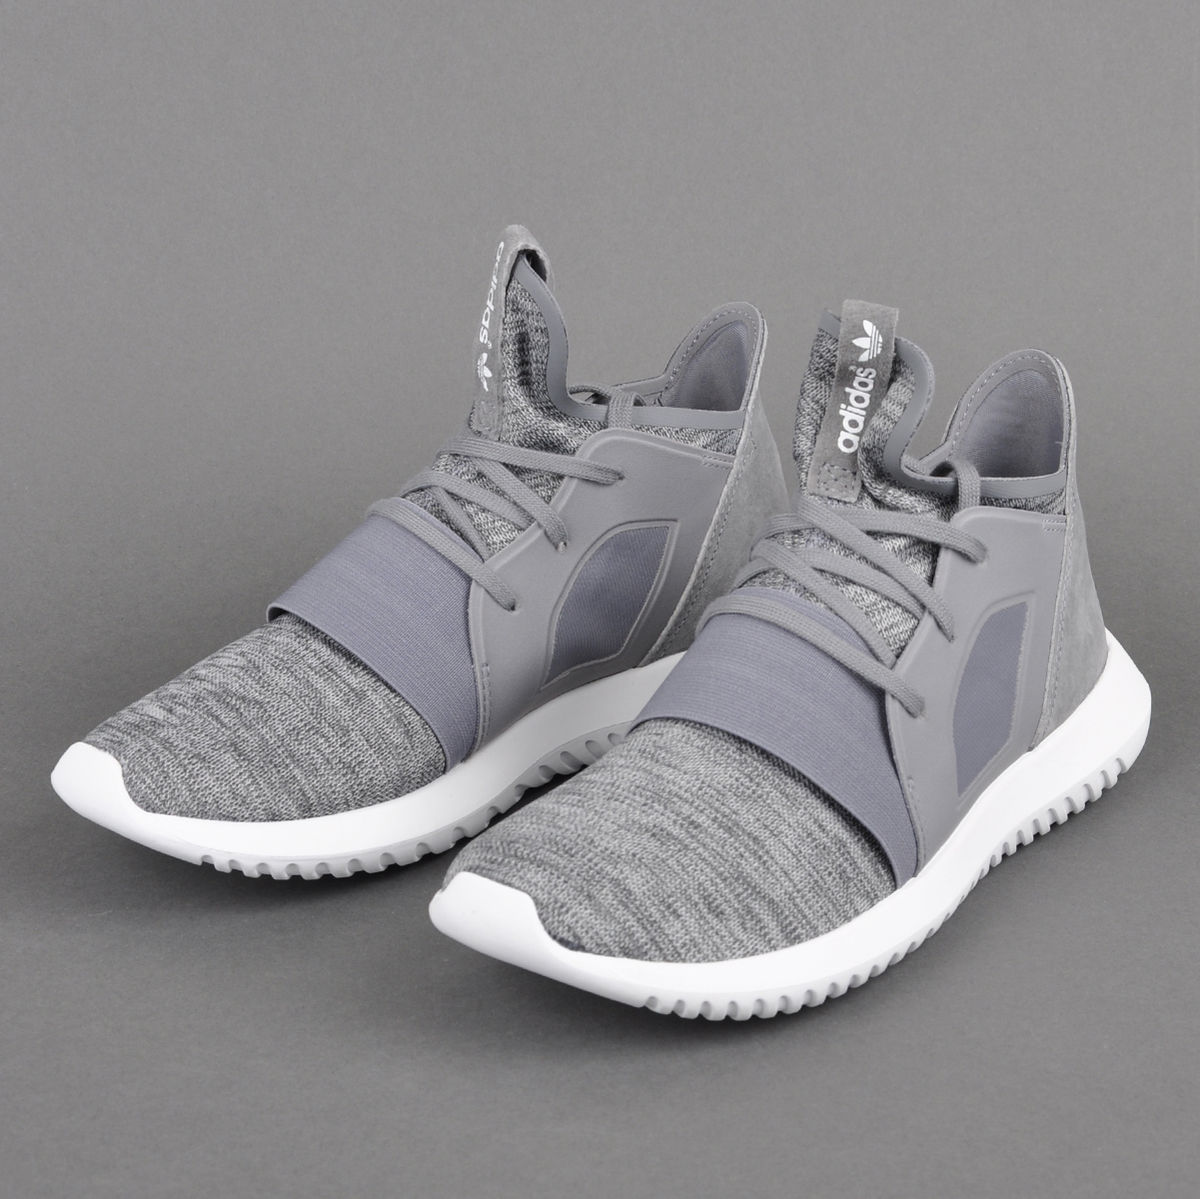 Adidas tubular women 's purple shoes